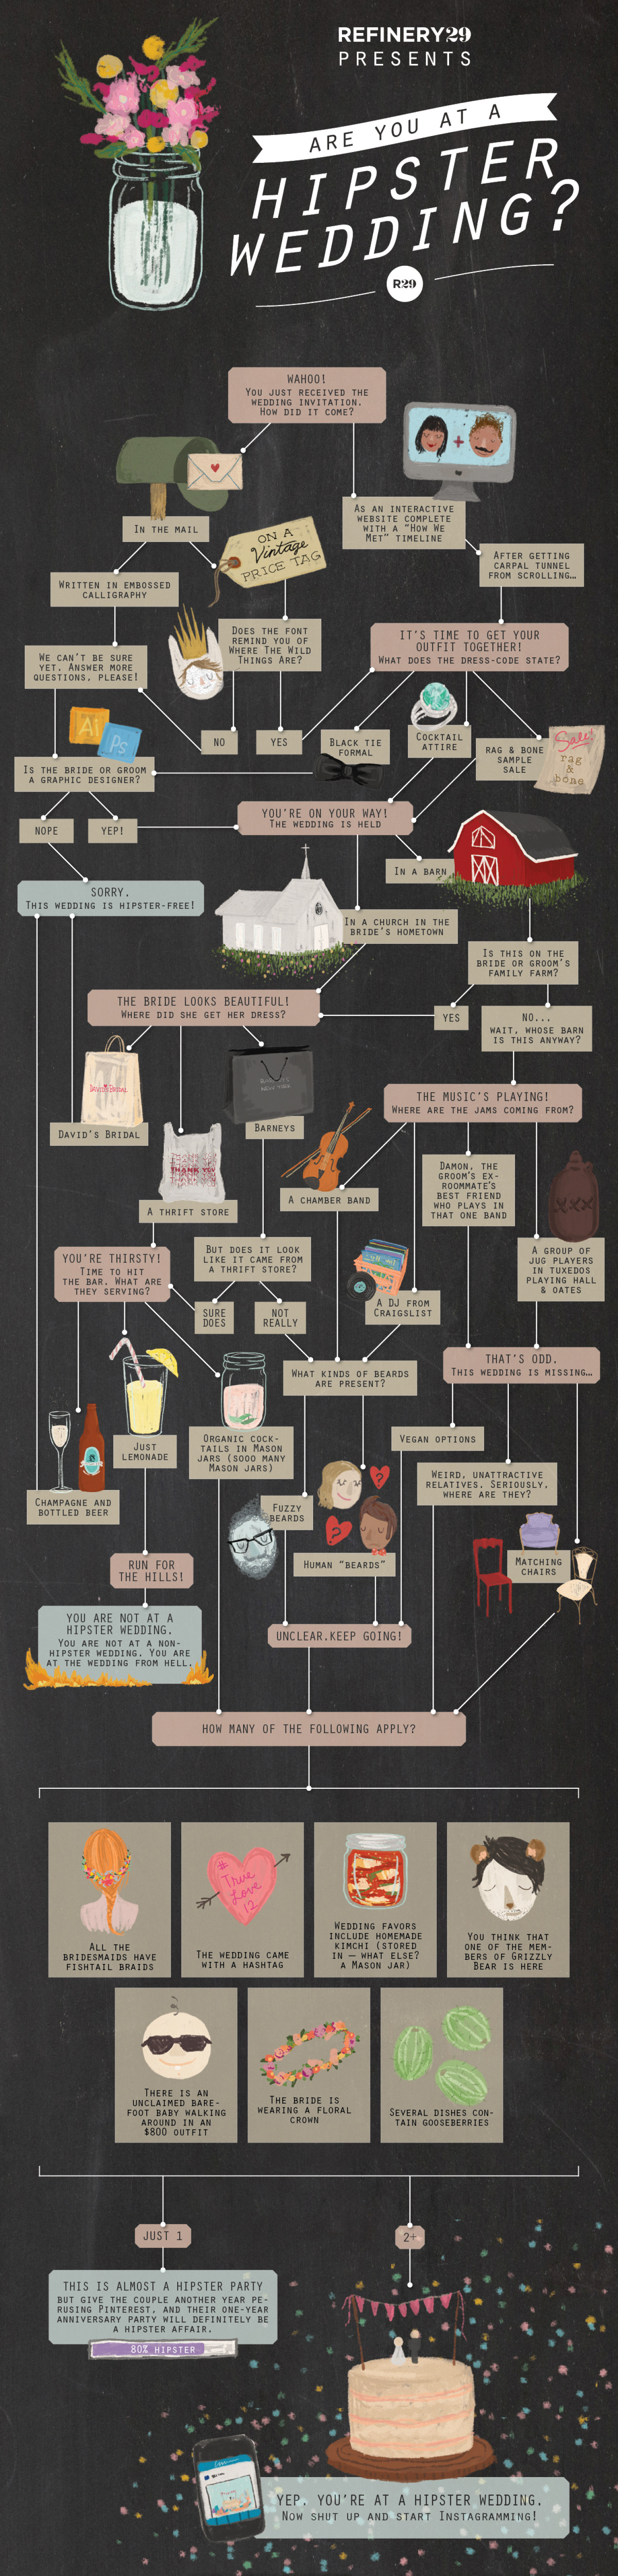 Are You at a Hipster Wedding? Infographic